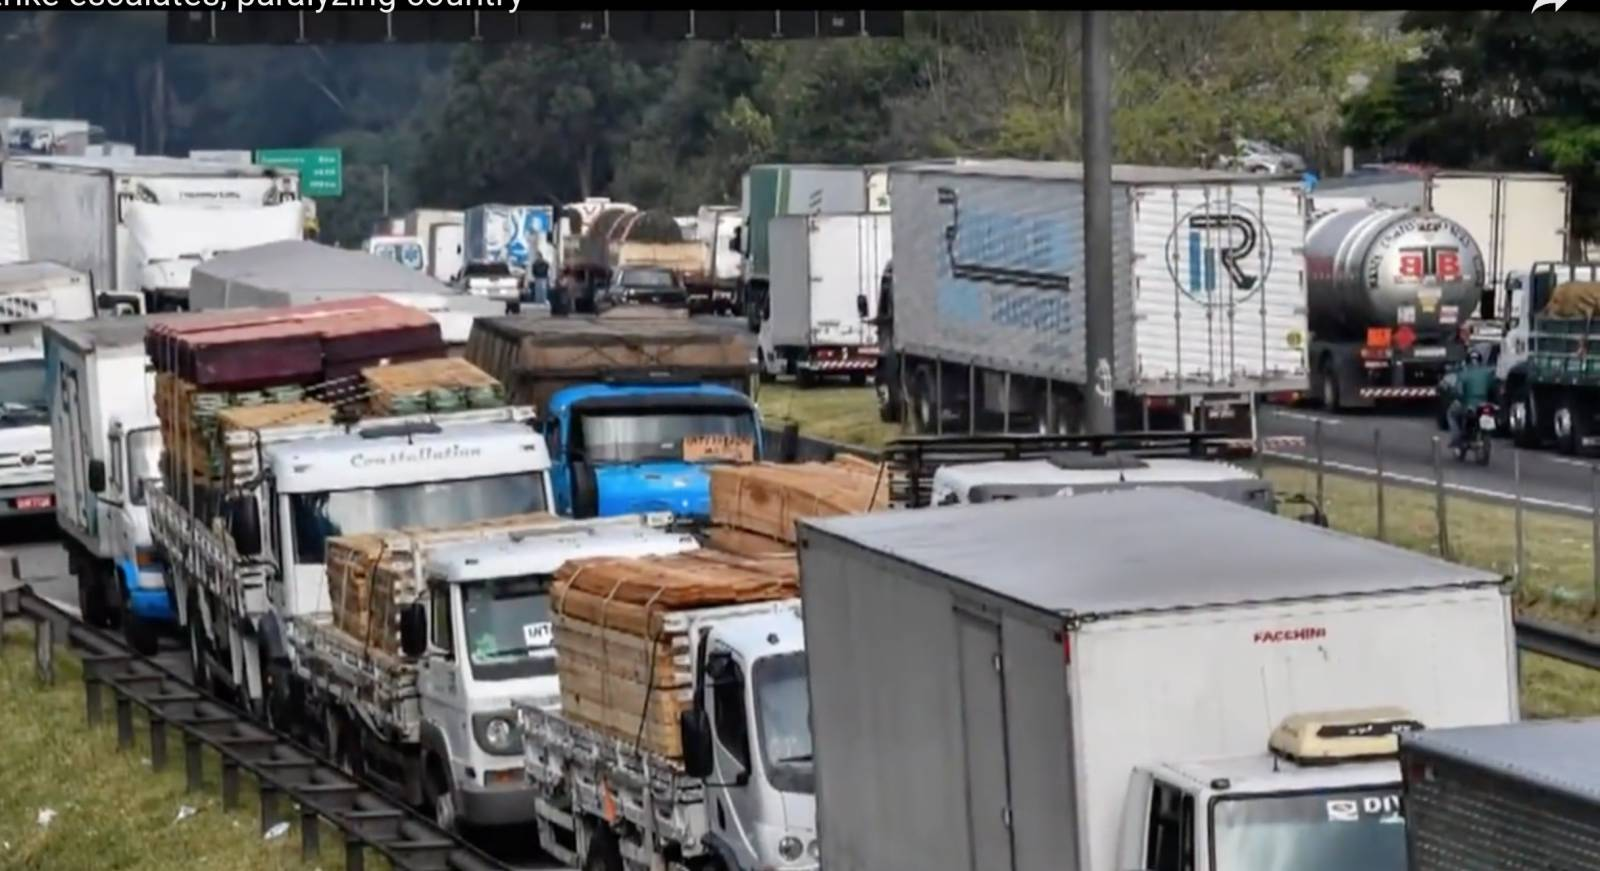 Eleven days that shook Brazil: Truckers' strike brings country to a halt